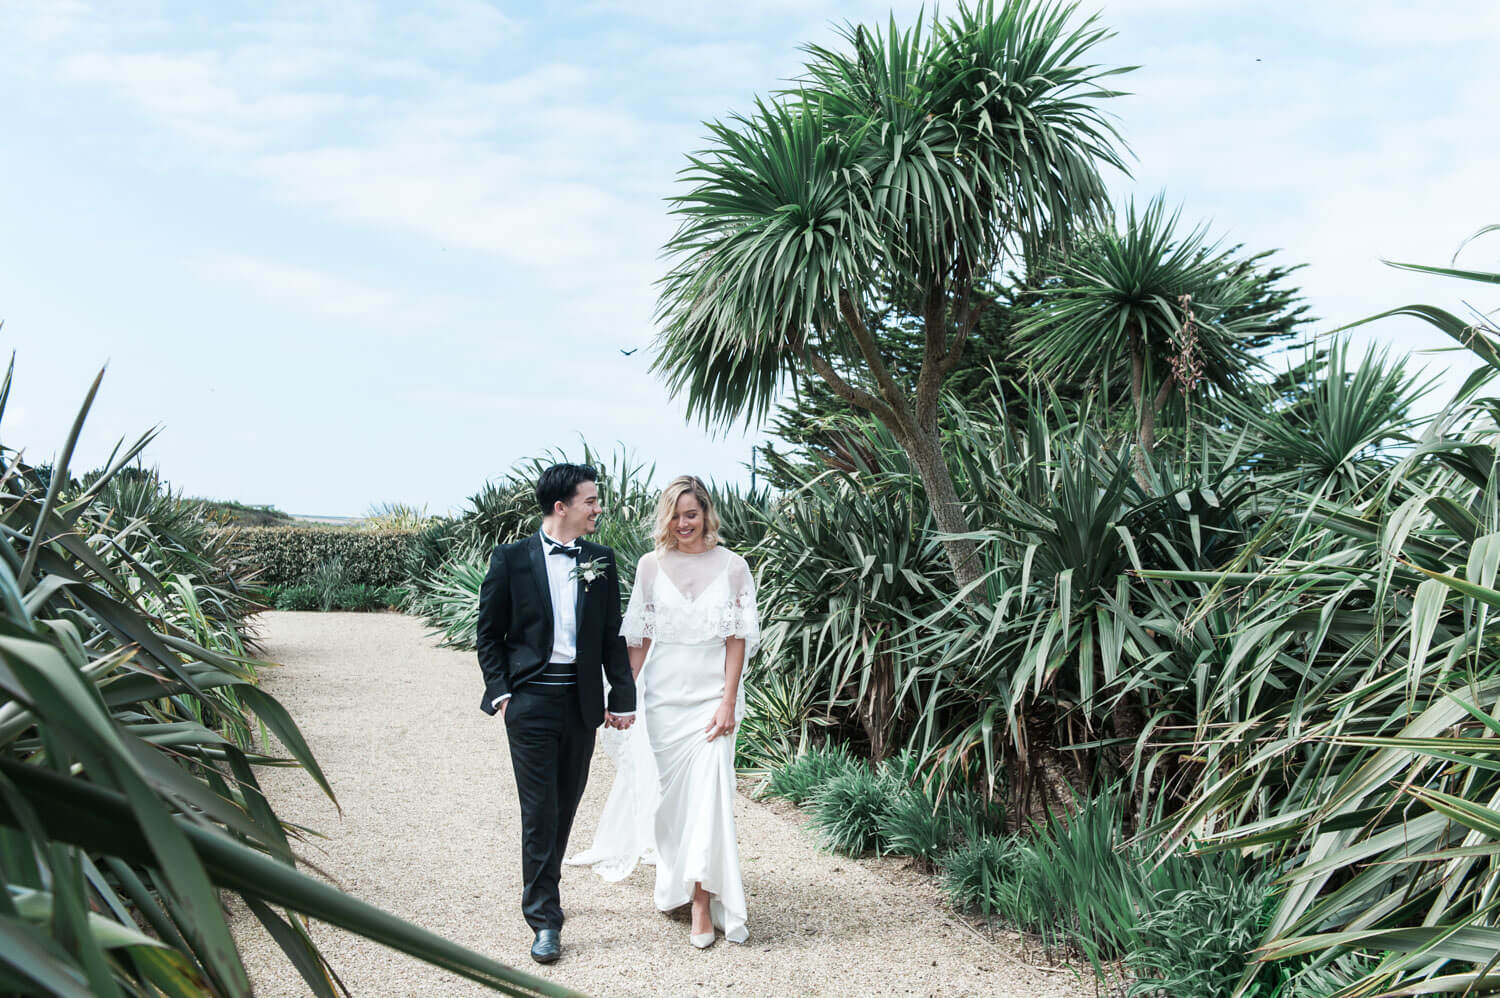 A bride and groom walking on a path in between tropical plants during their destination wedding in Cornwall in The United Kingdom